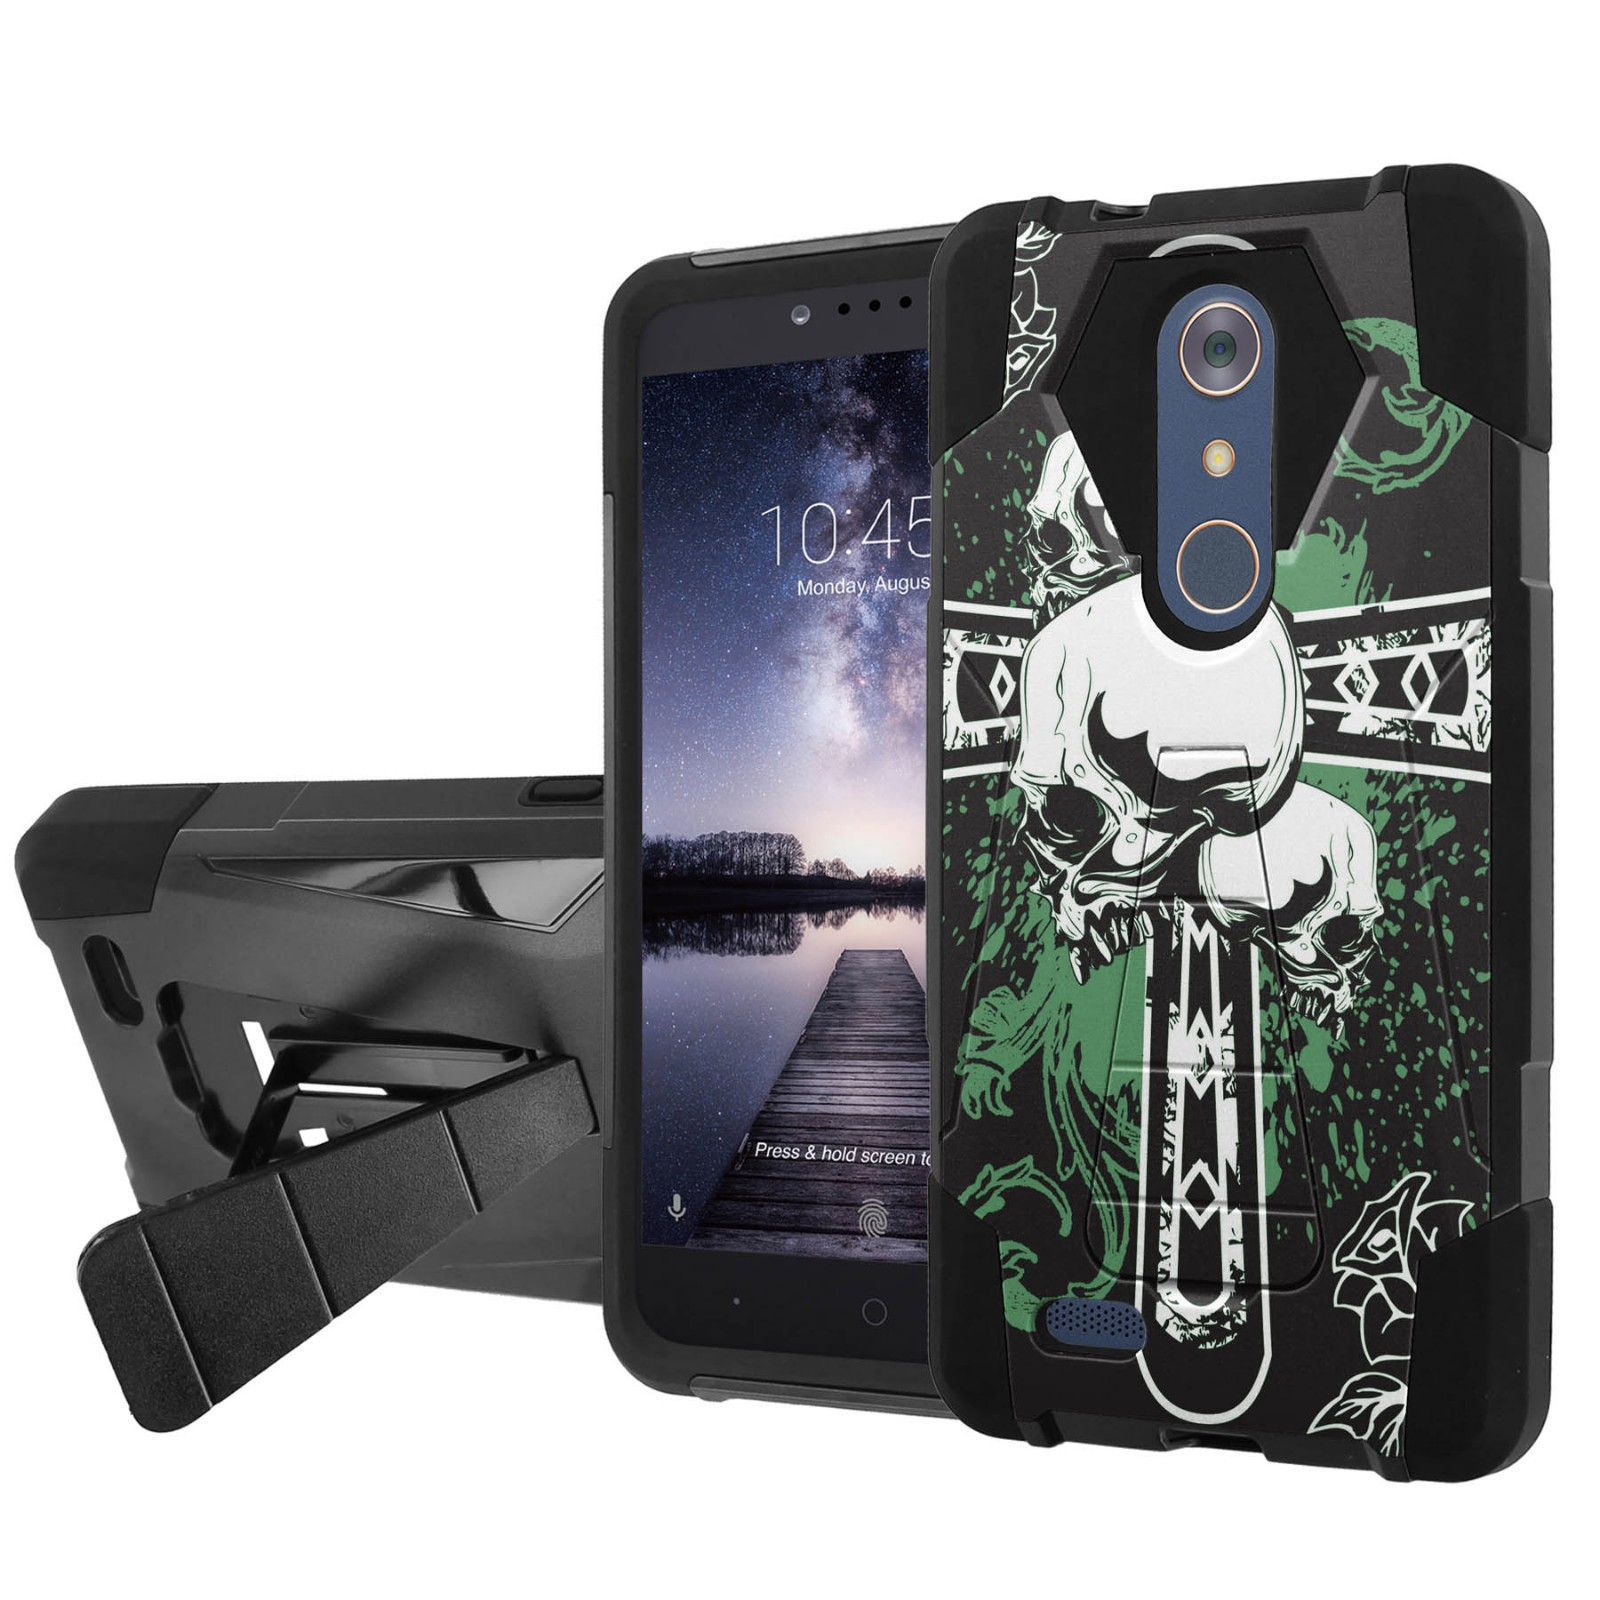 markus zte zmax pro case with kickstand people feel